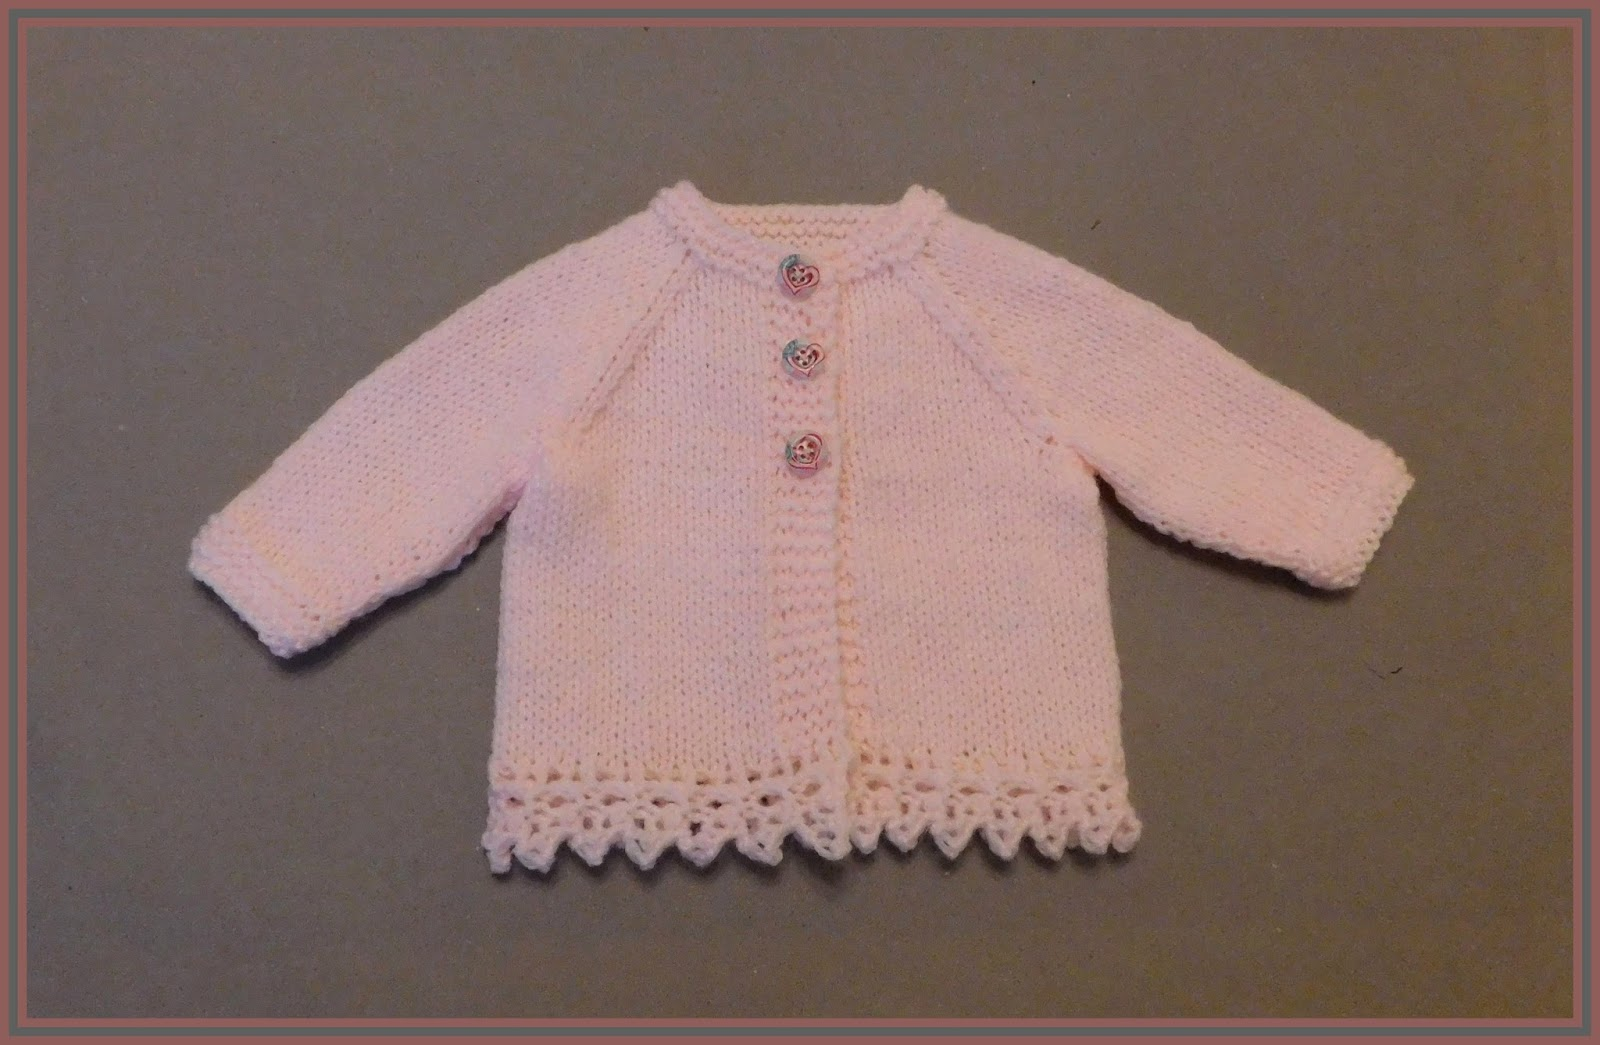 Short Sleeved Baby Cardigan Side Fastening Unique Crochet Baby Set Easy Newborn Crochet Cardigan FREE Pattern months Newborn Baby long sleeved cardigan Free Crochet Newborn Crochet Cardigan Boys Hooded Crochet Cardigan Baby Bear Crochet Cardigan Free Pattern Share this: Tweet; Share on Tumblr; Recent Posts & Patterns. Free Baby SunHat.